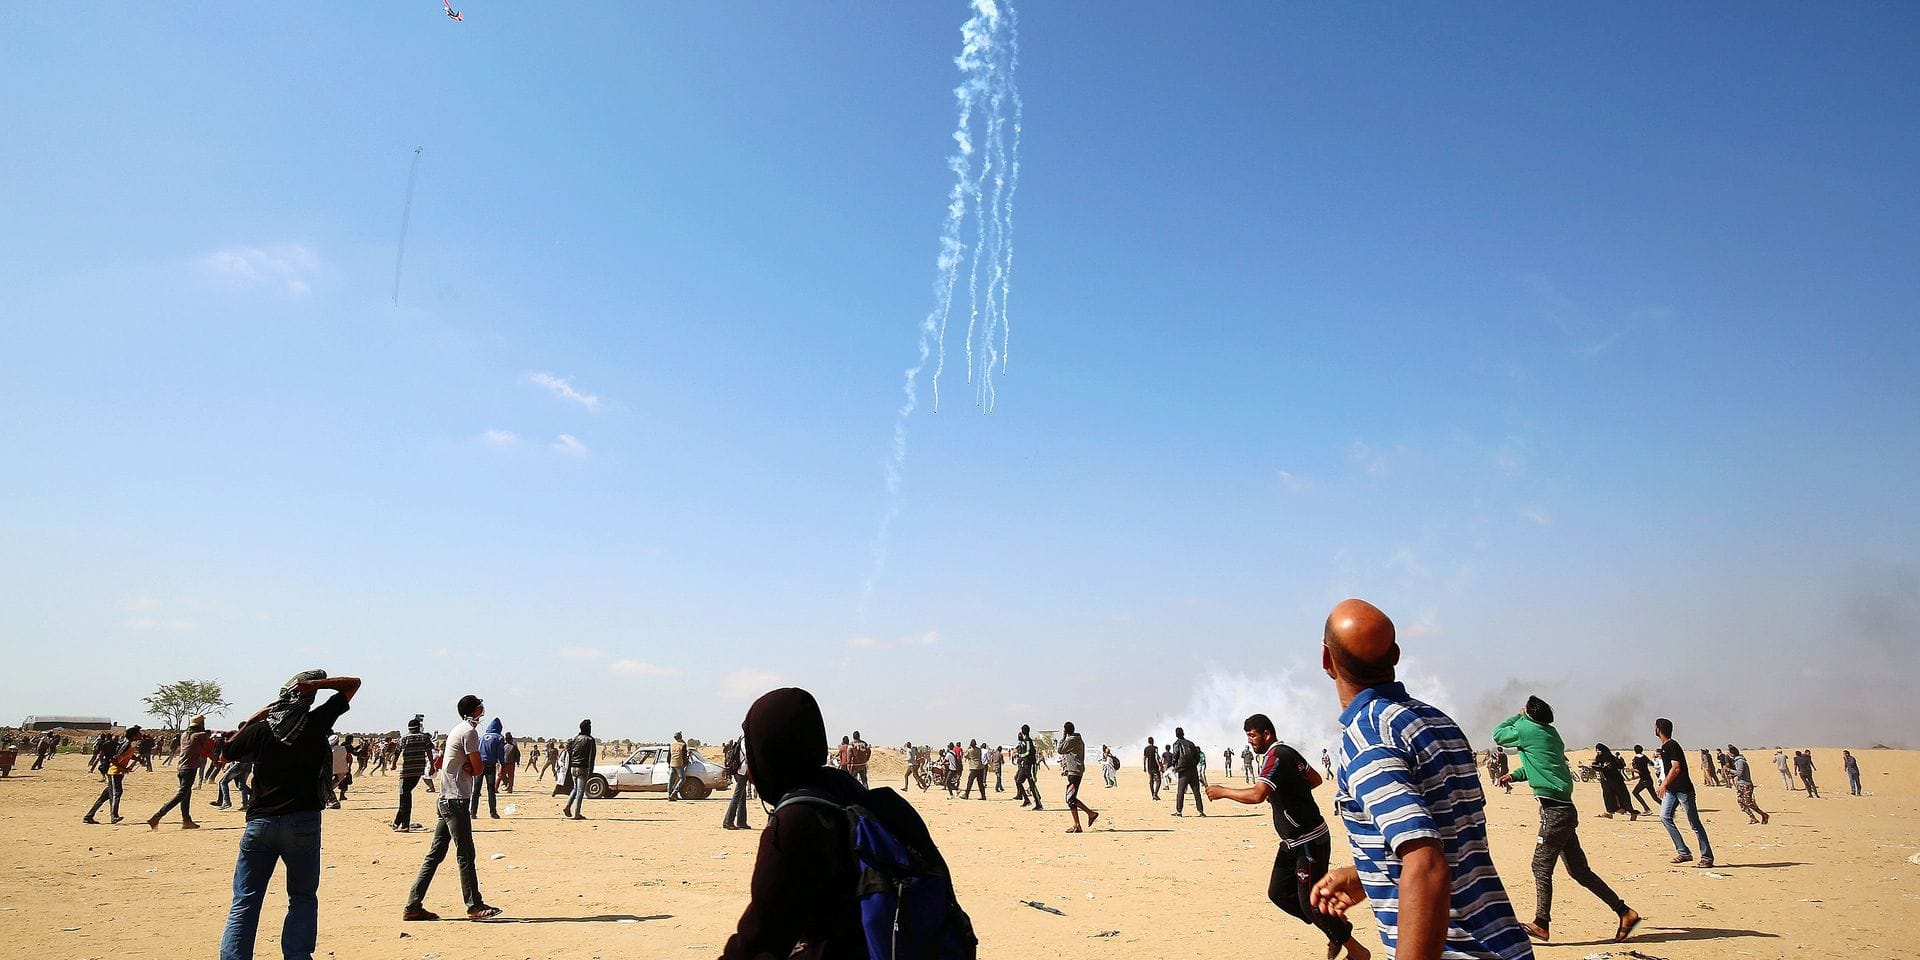 TOPSHOT - Palestinian protesters look up at falling tear gas cannisters dropped by an Israeli quadcopter drone during clashes near the border with Israel east of Khan Yunis in the southern Gaza Strip on May 15, 2018, amidst demonstrations marking 70th anniversary of Nakba -- also known as Day of the Catastrophe in 1948 -- and against the US' relocation of its embassy from Tel Aviv to Jerusalem. / AFP PHOTO / SAID KHATIB